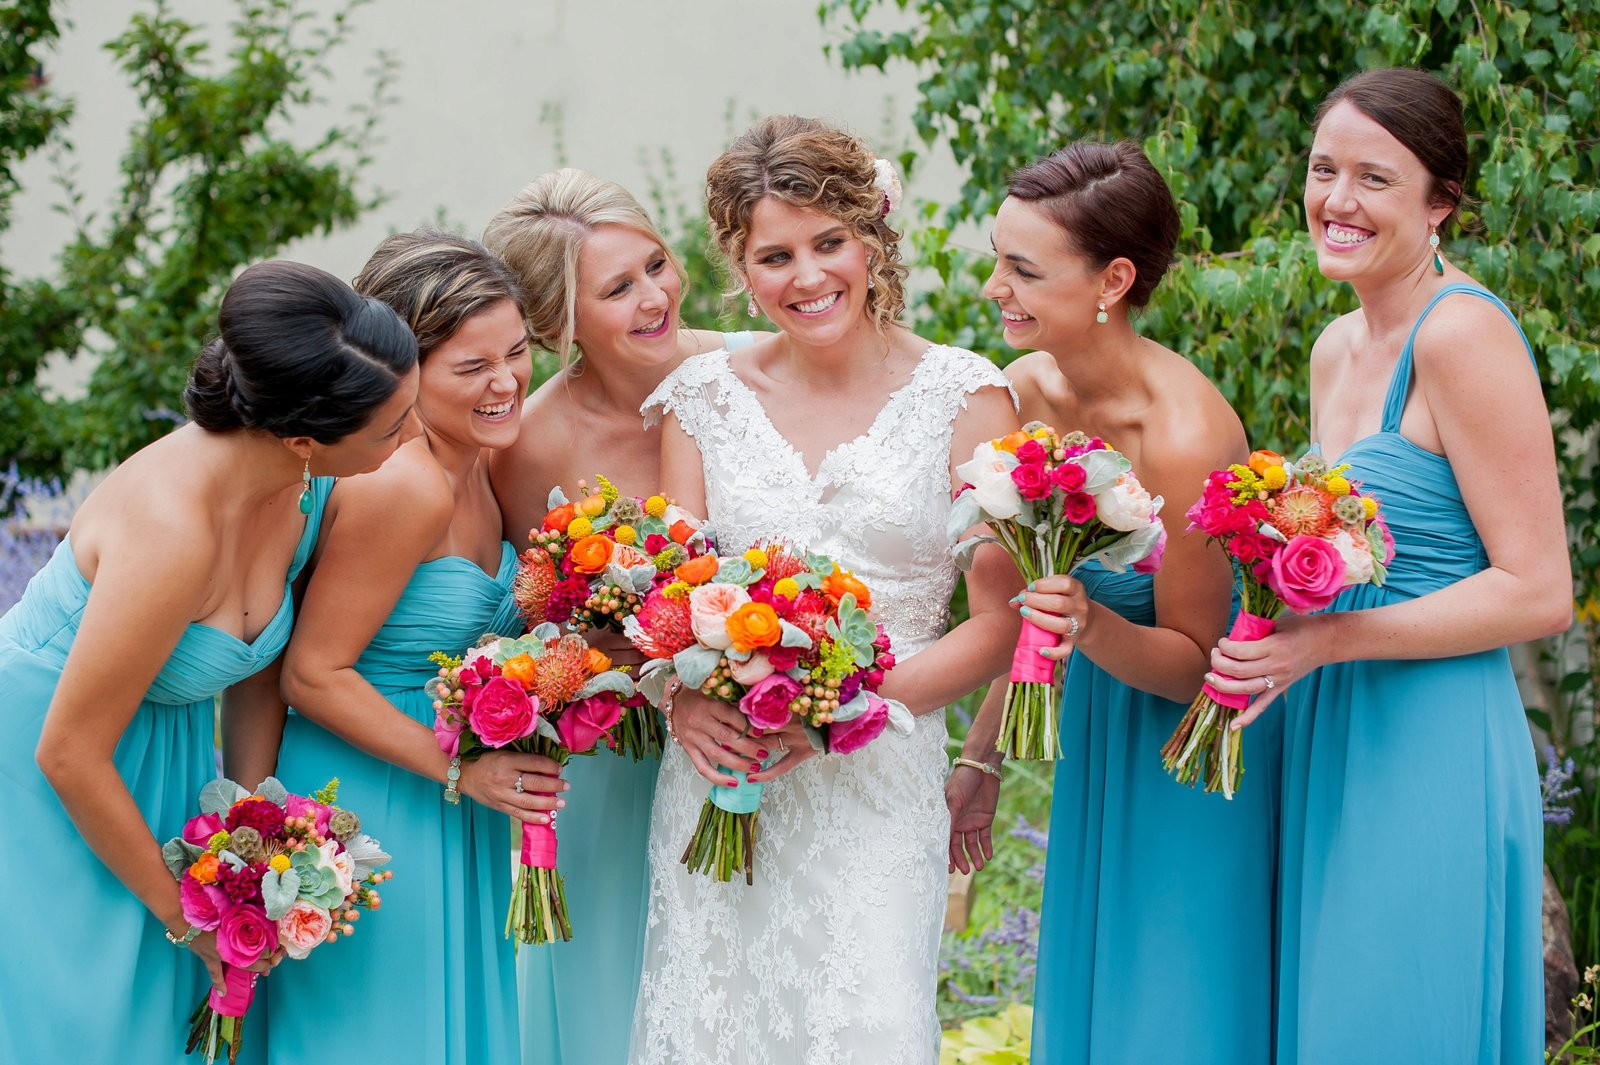 laughing bridesmaids photographed by kriskandel.com